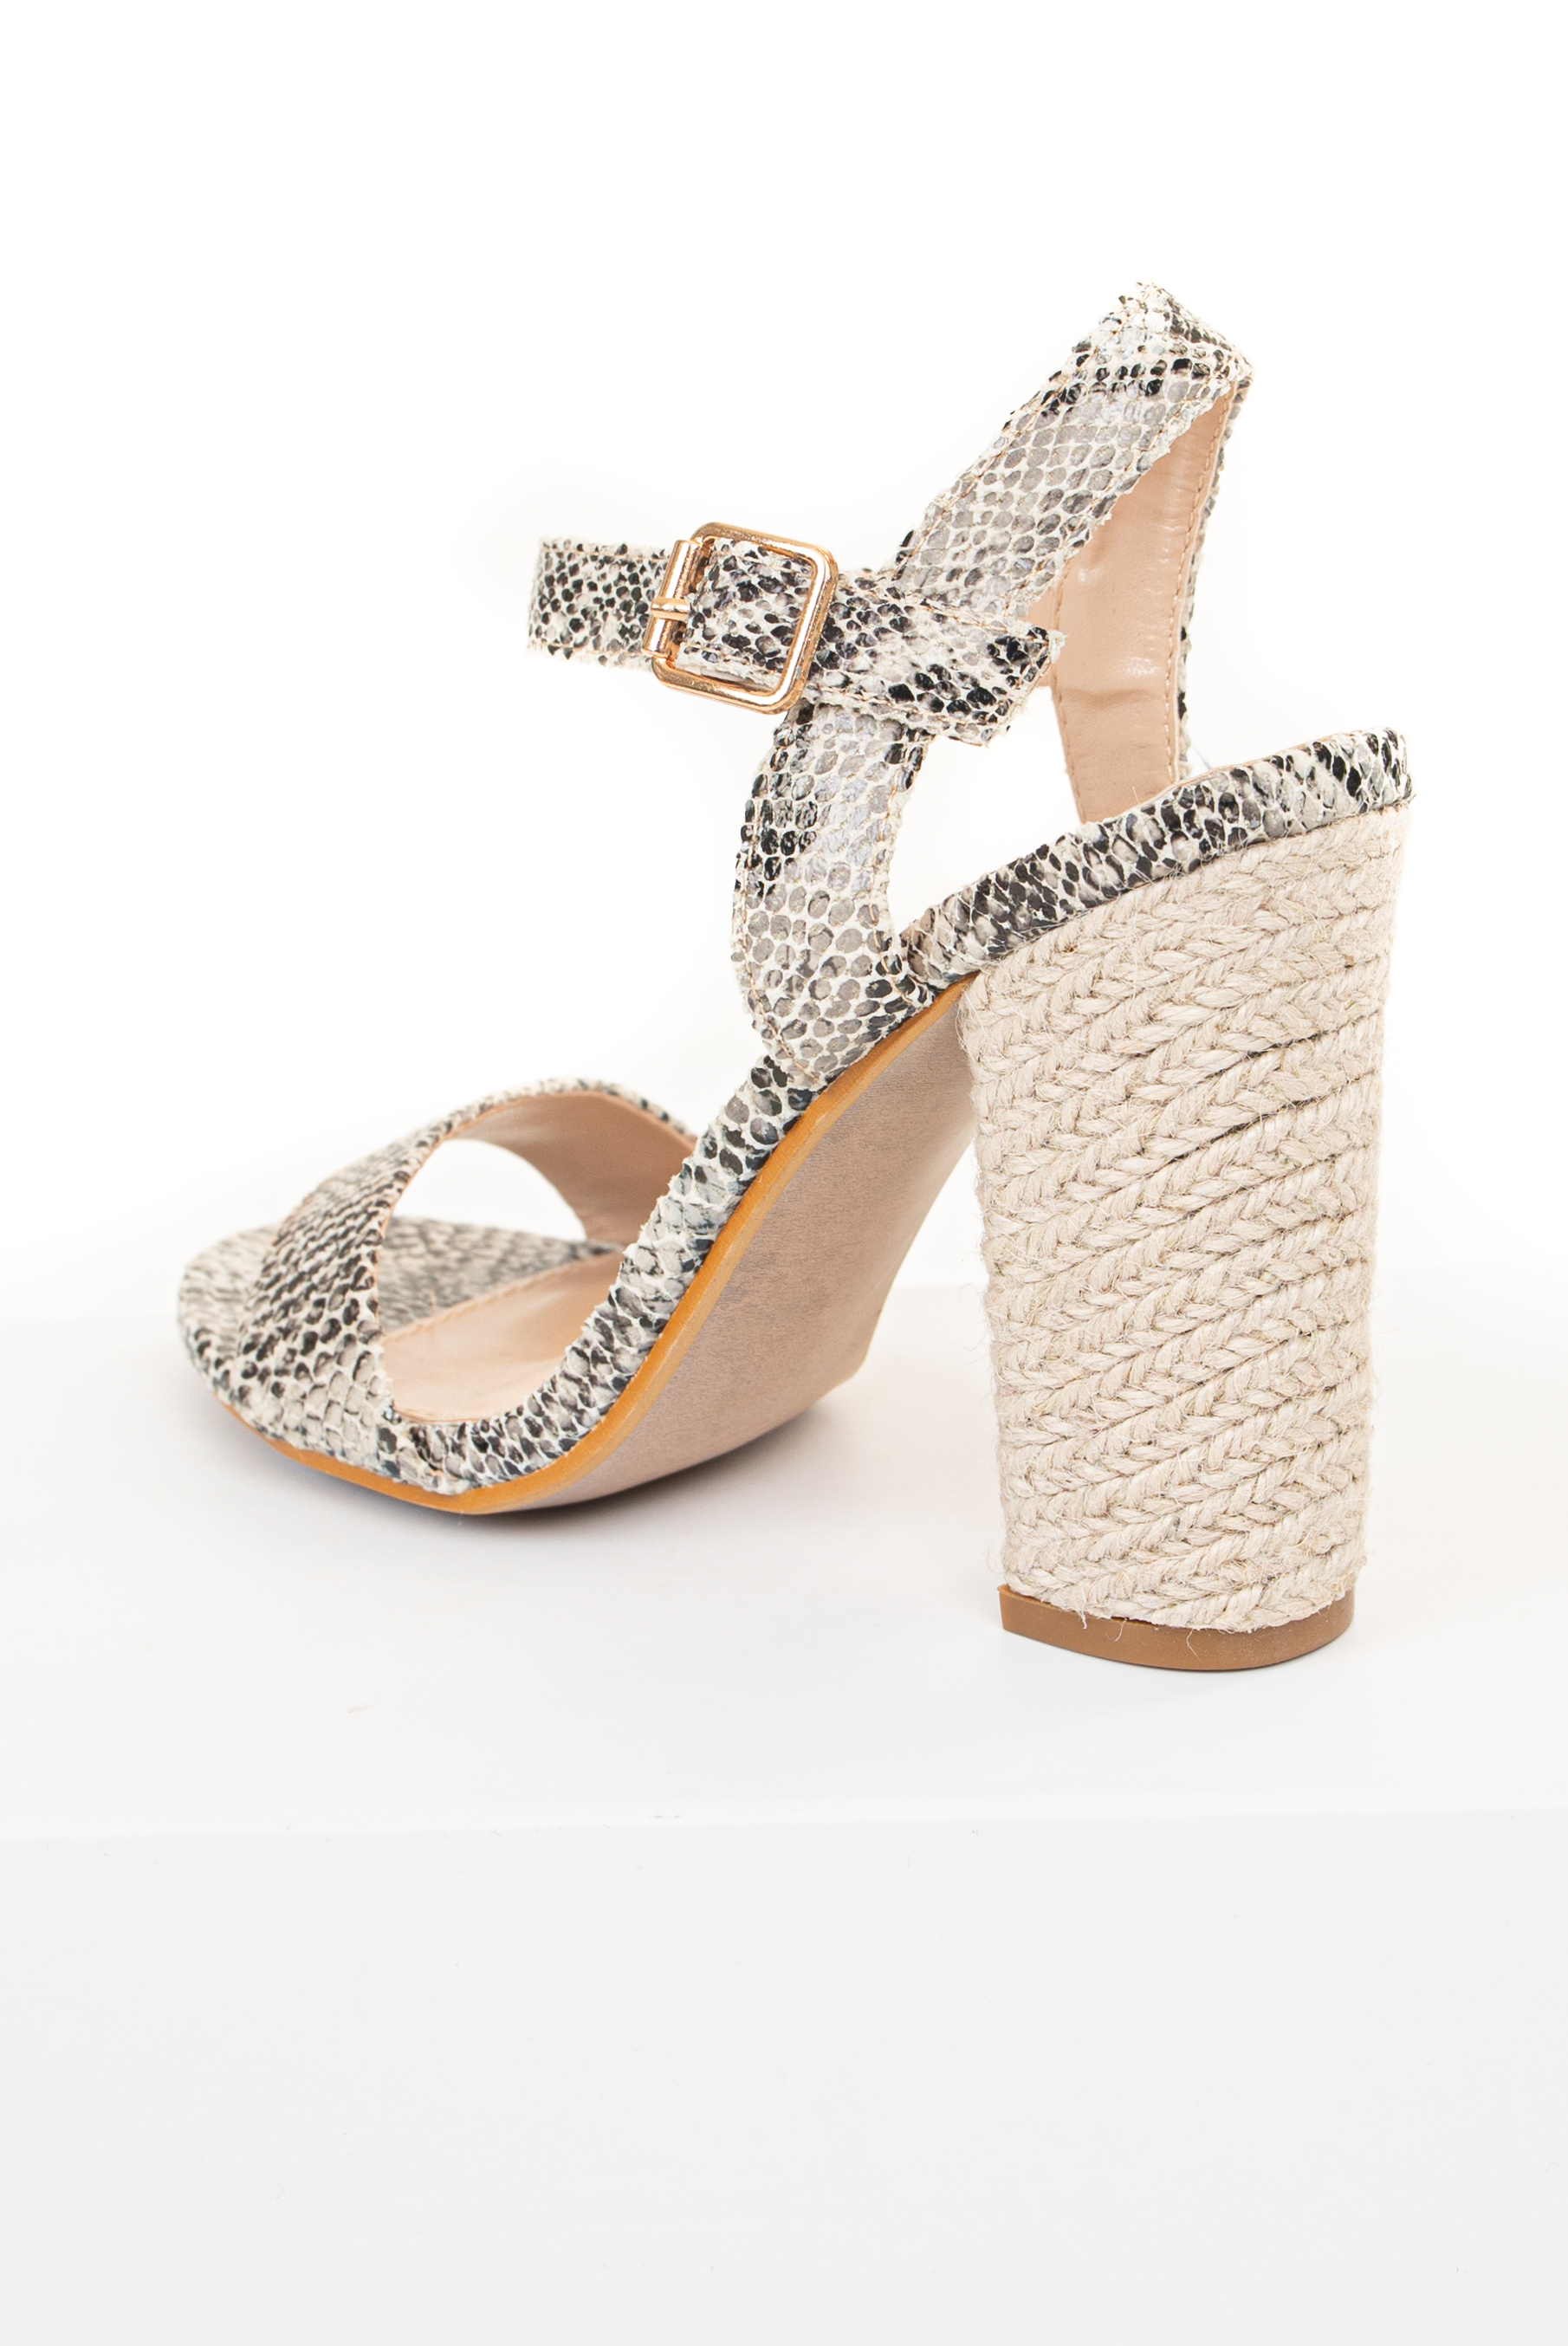 Grey Snakeskin Open Toe Textured Sandal with Espadrille Heel